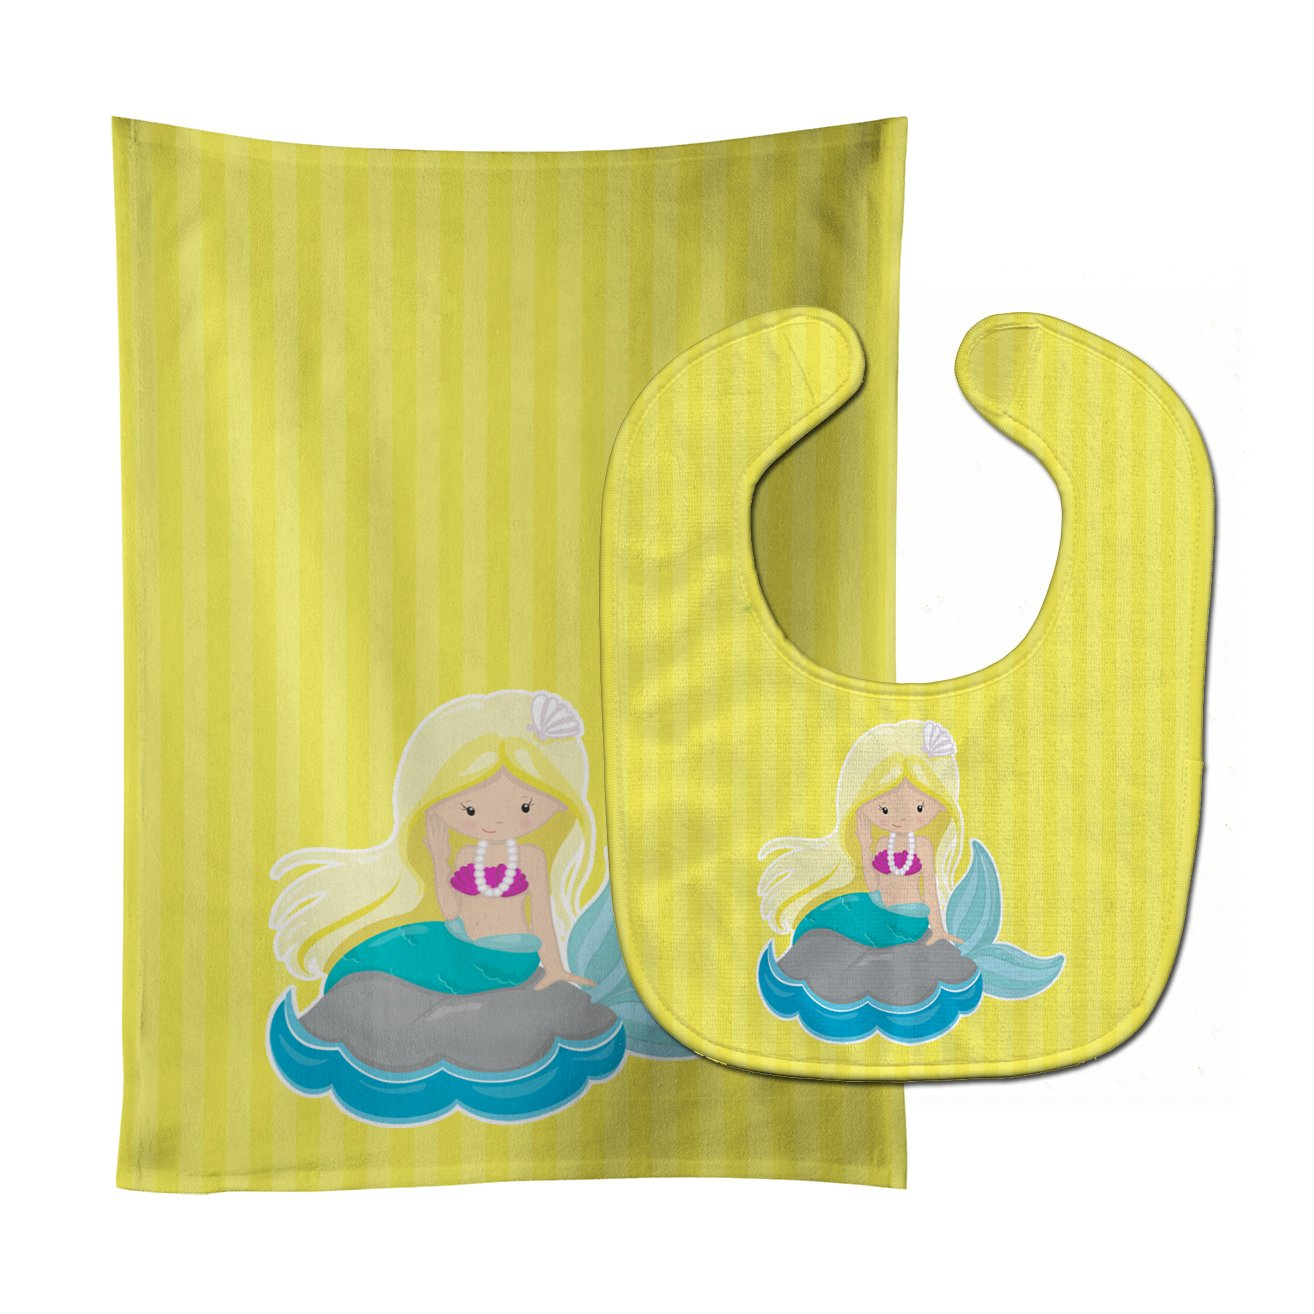 Beach Mermaid Blonde Hair #2 Baby Bib & Burp Cloth BB8833STBU by Caroline's Treasures